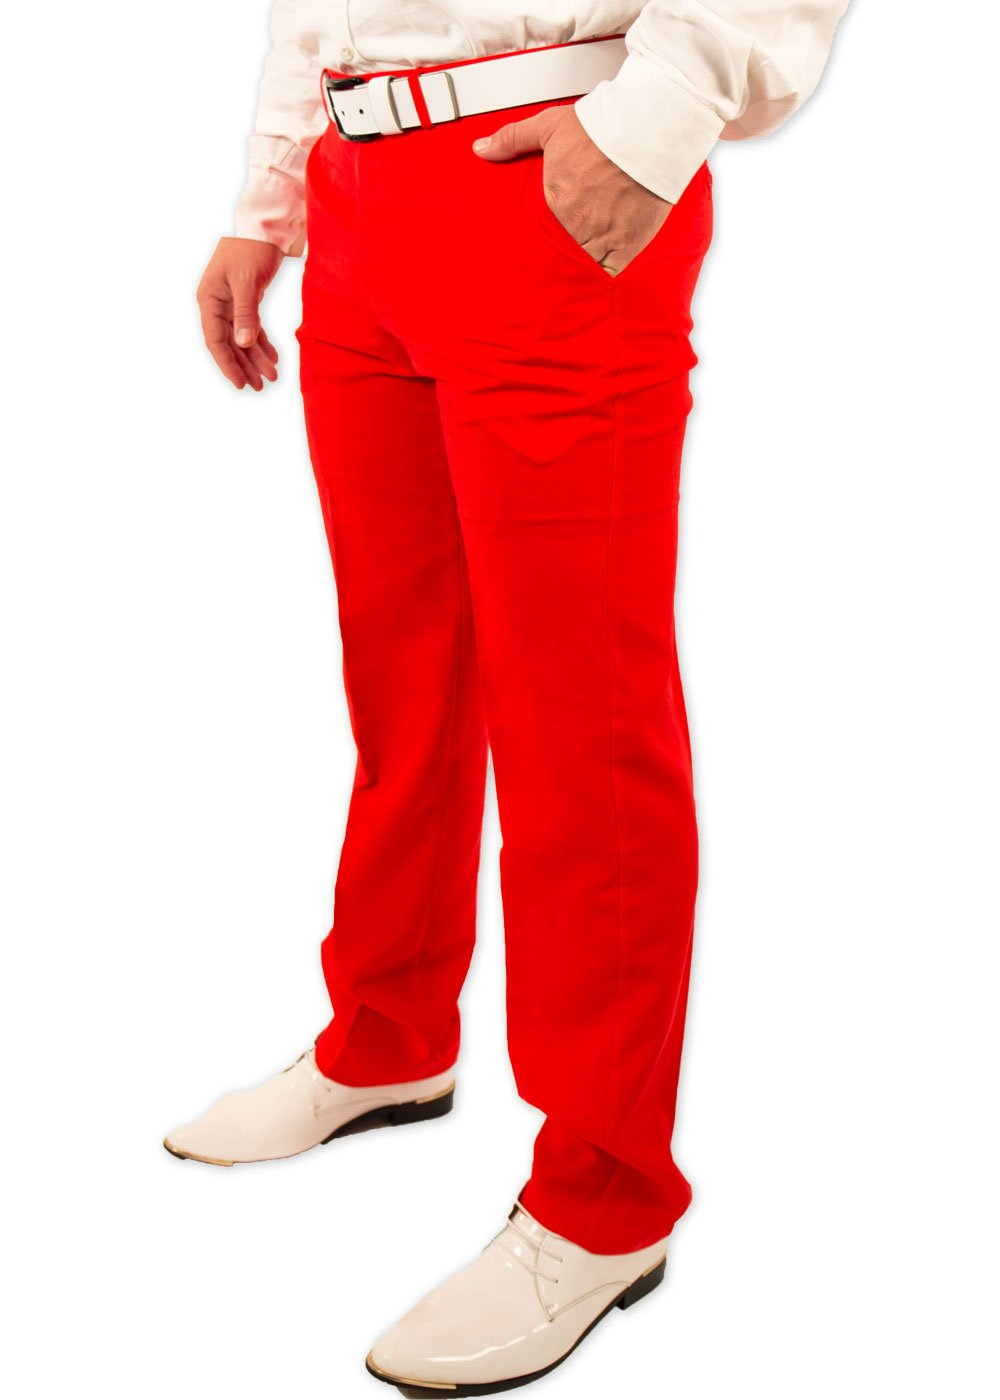 Festified Men's Classic Party Pants In Red (32)